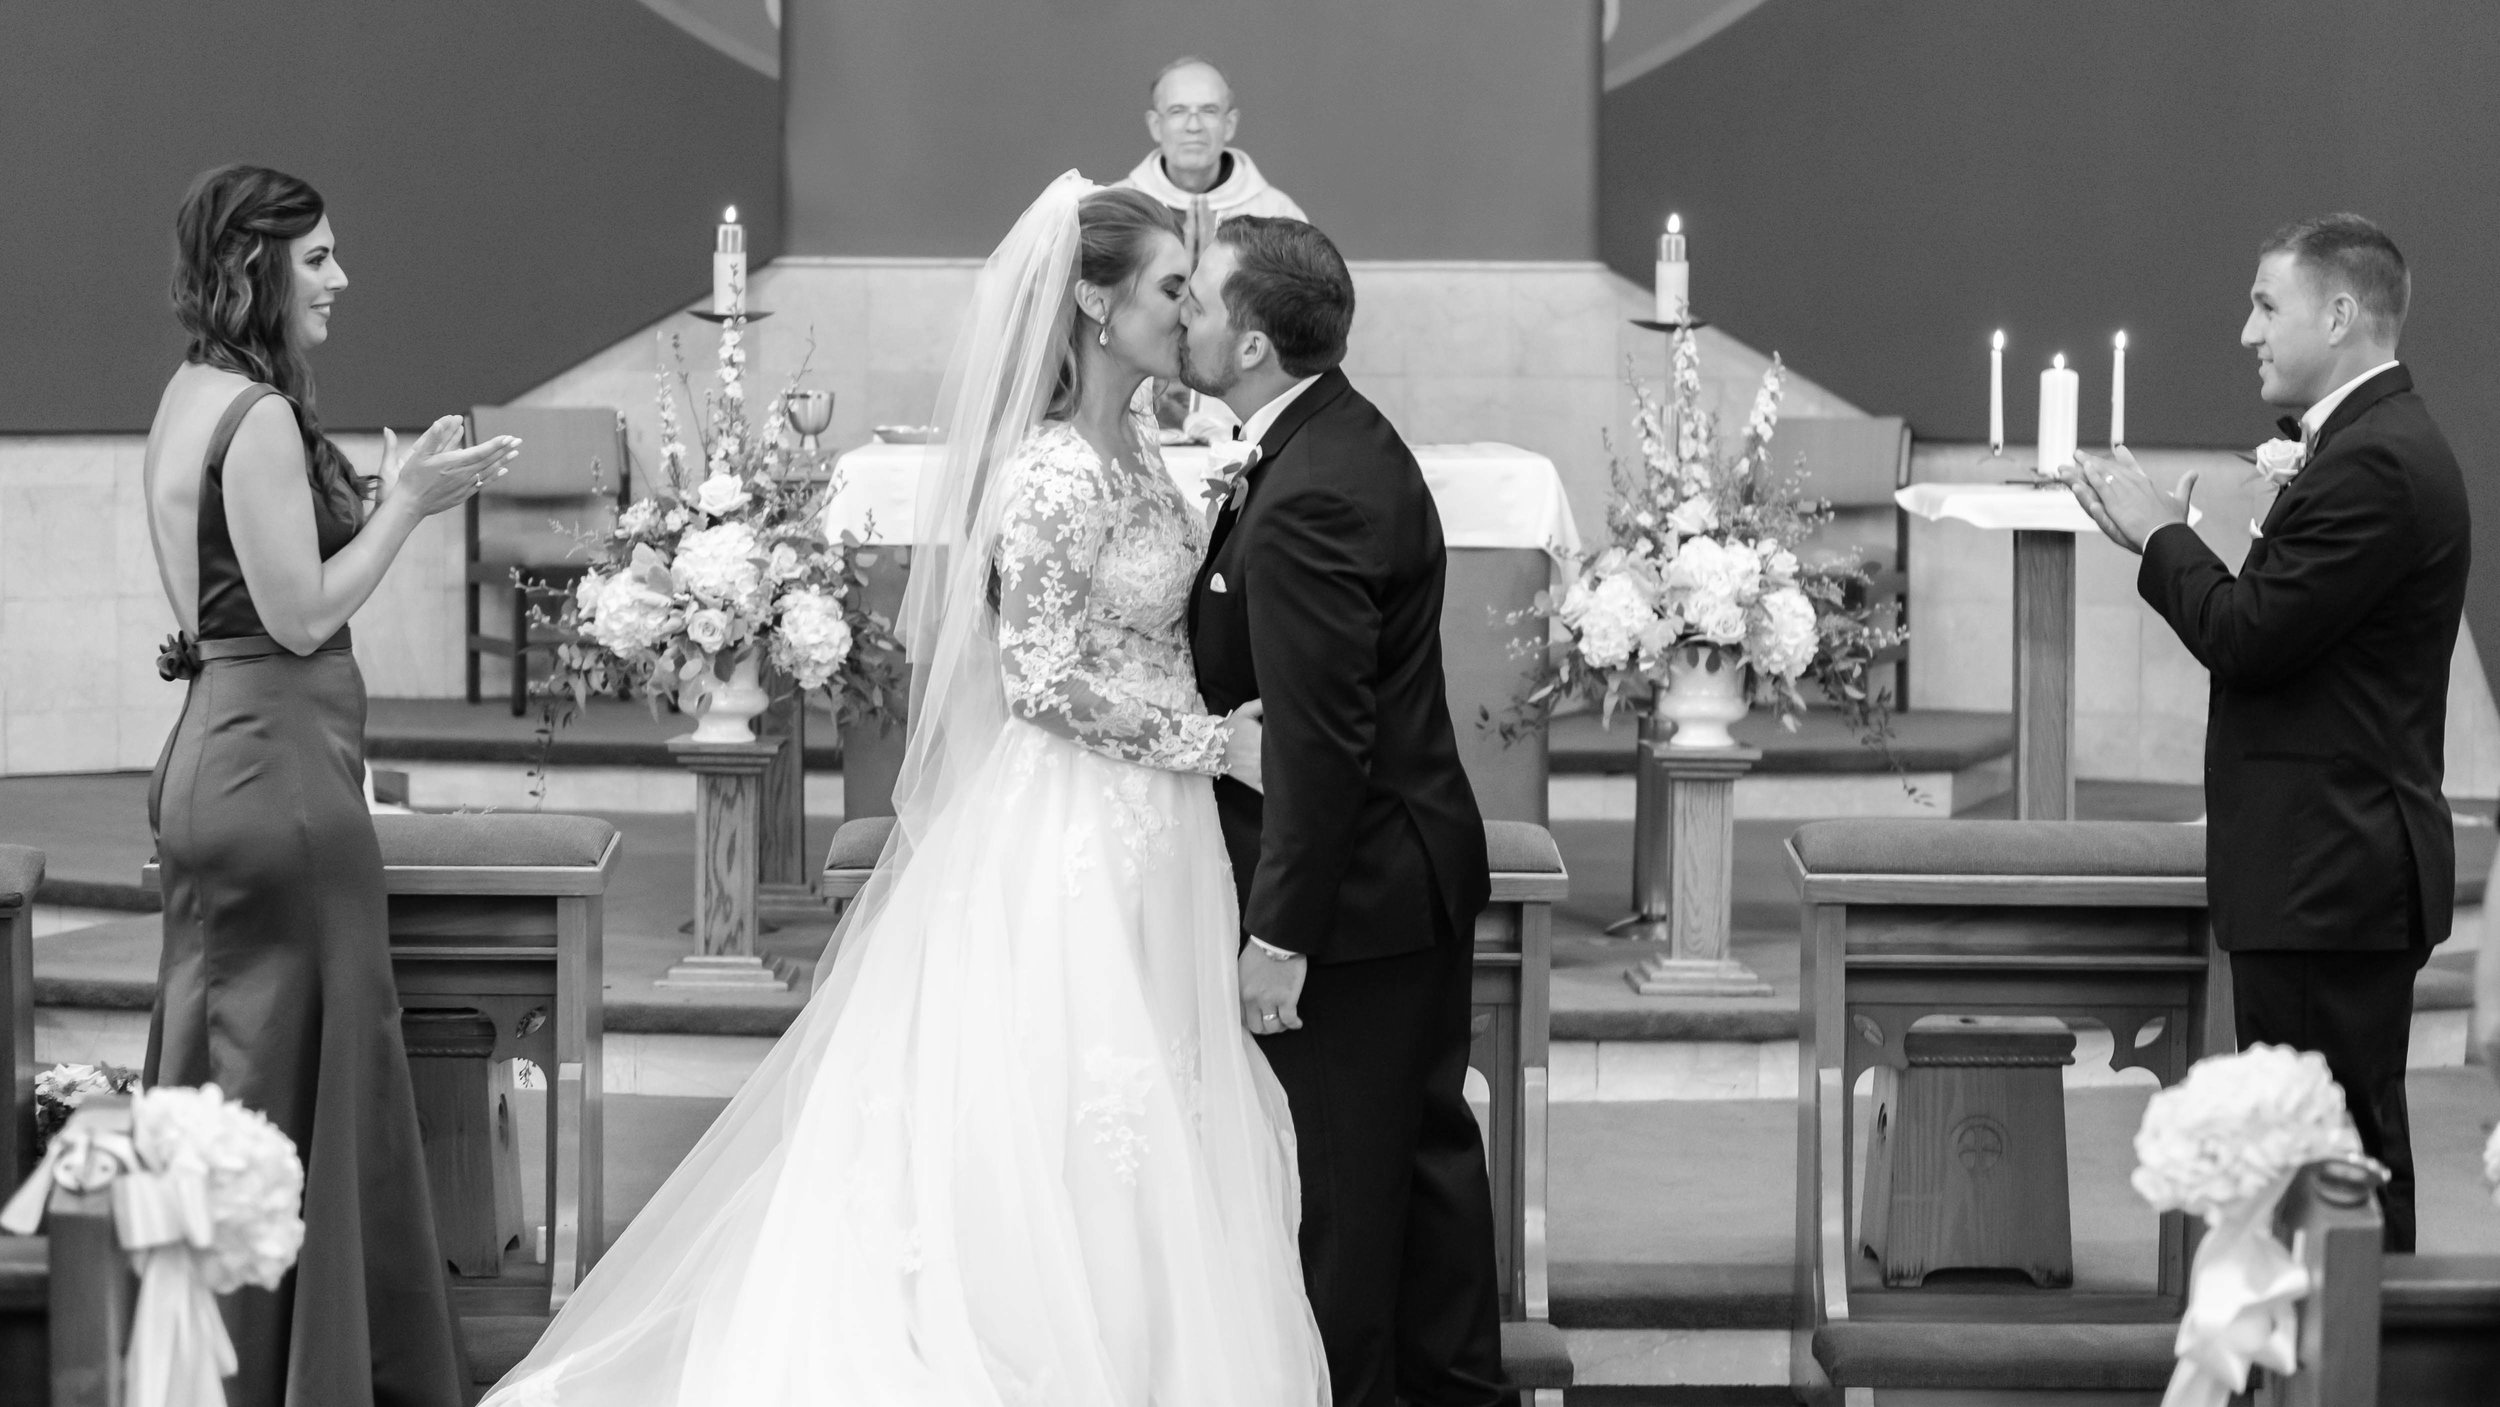 Wedding-Ceremony-Our-Lady-of-Peace-Church--14.jpg